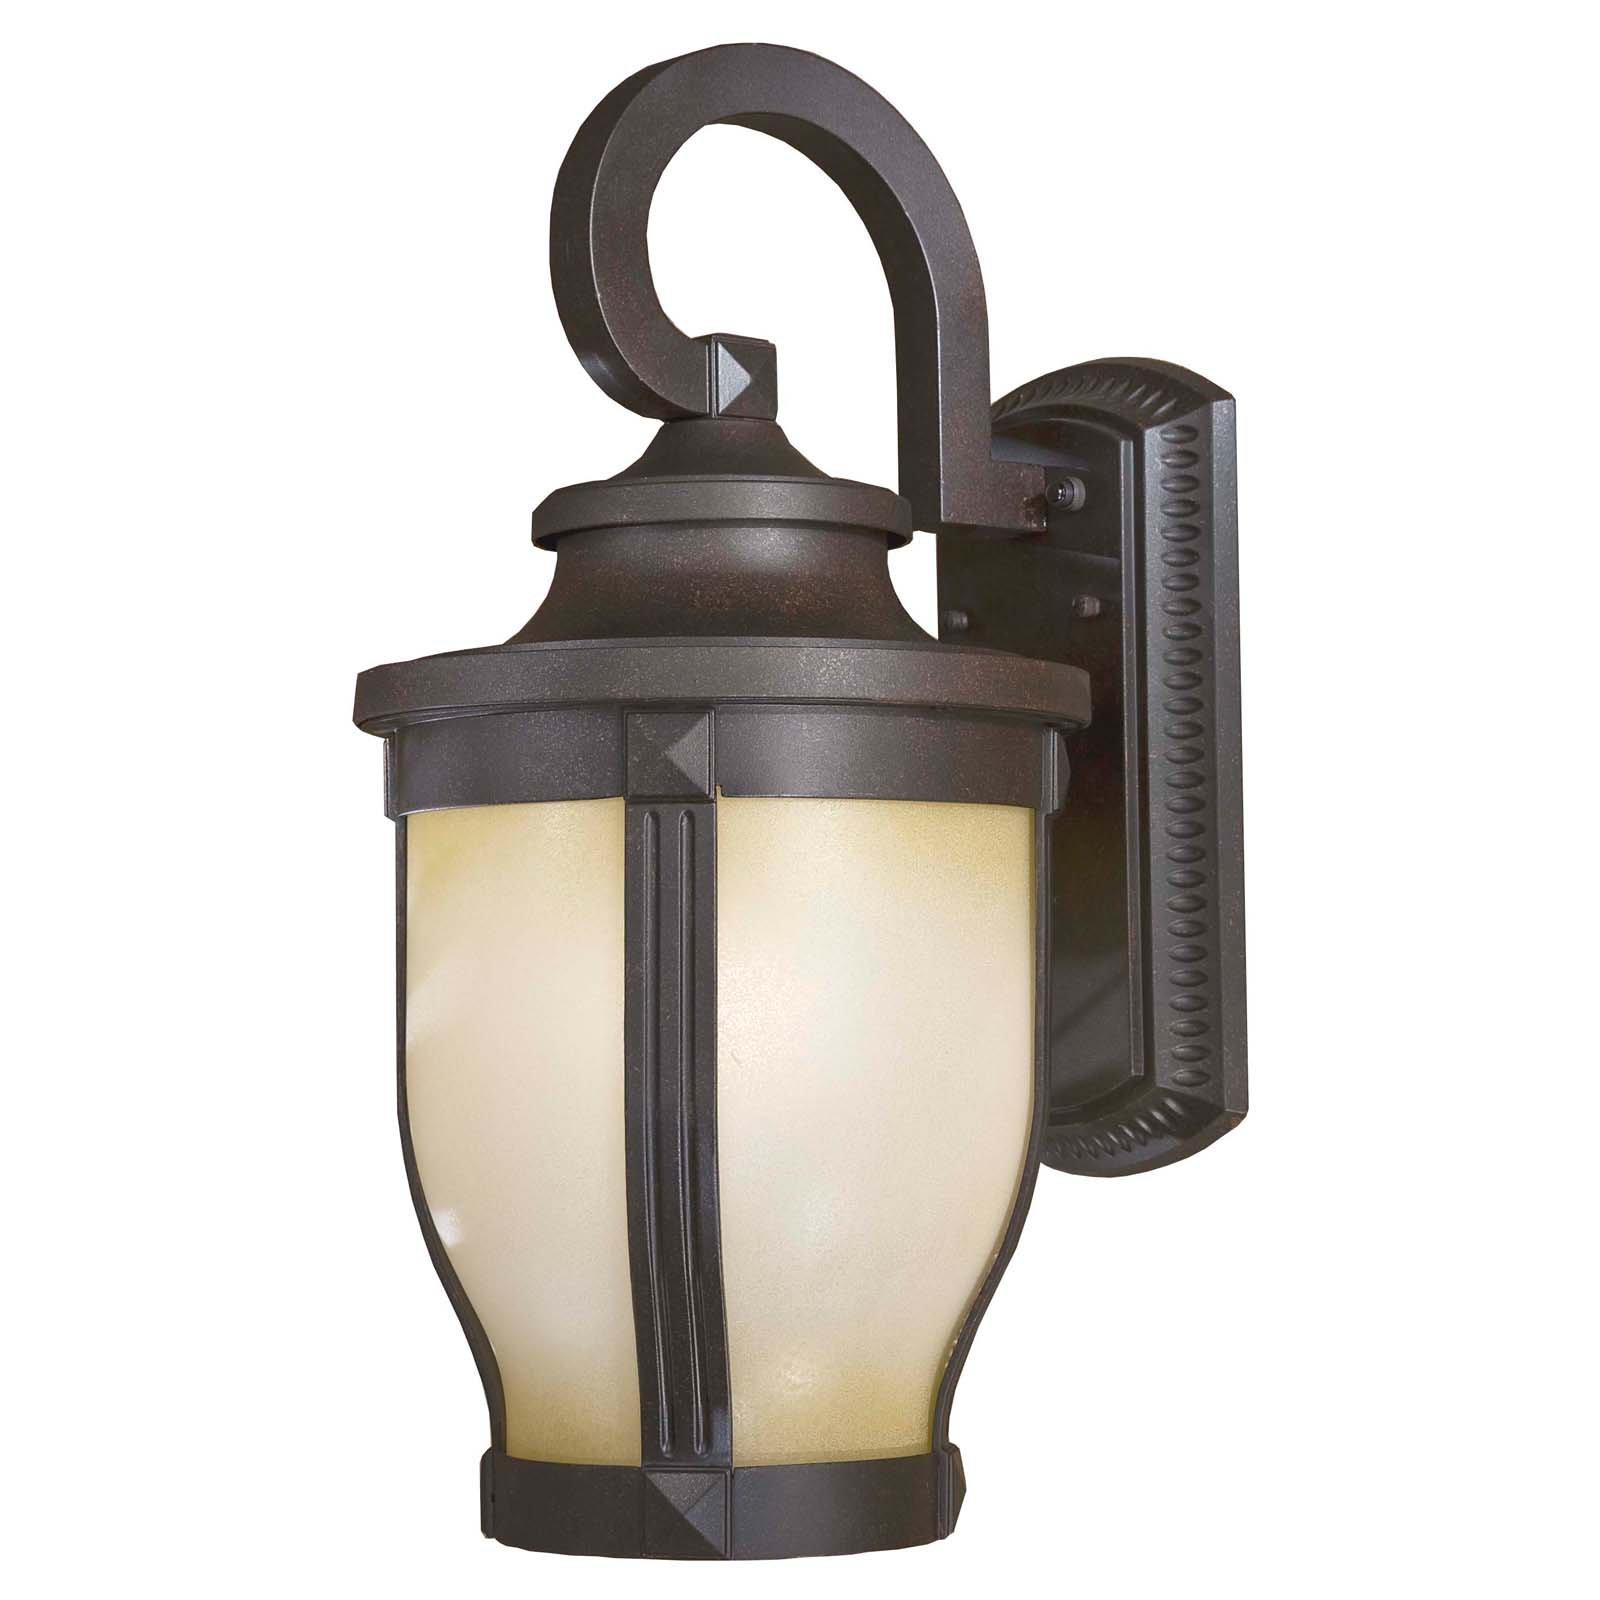 Minka Lavery Merrimack 876-166 Wall Mount Light